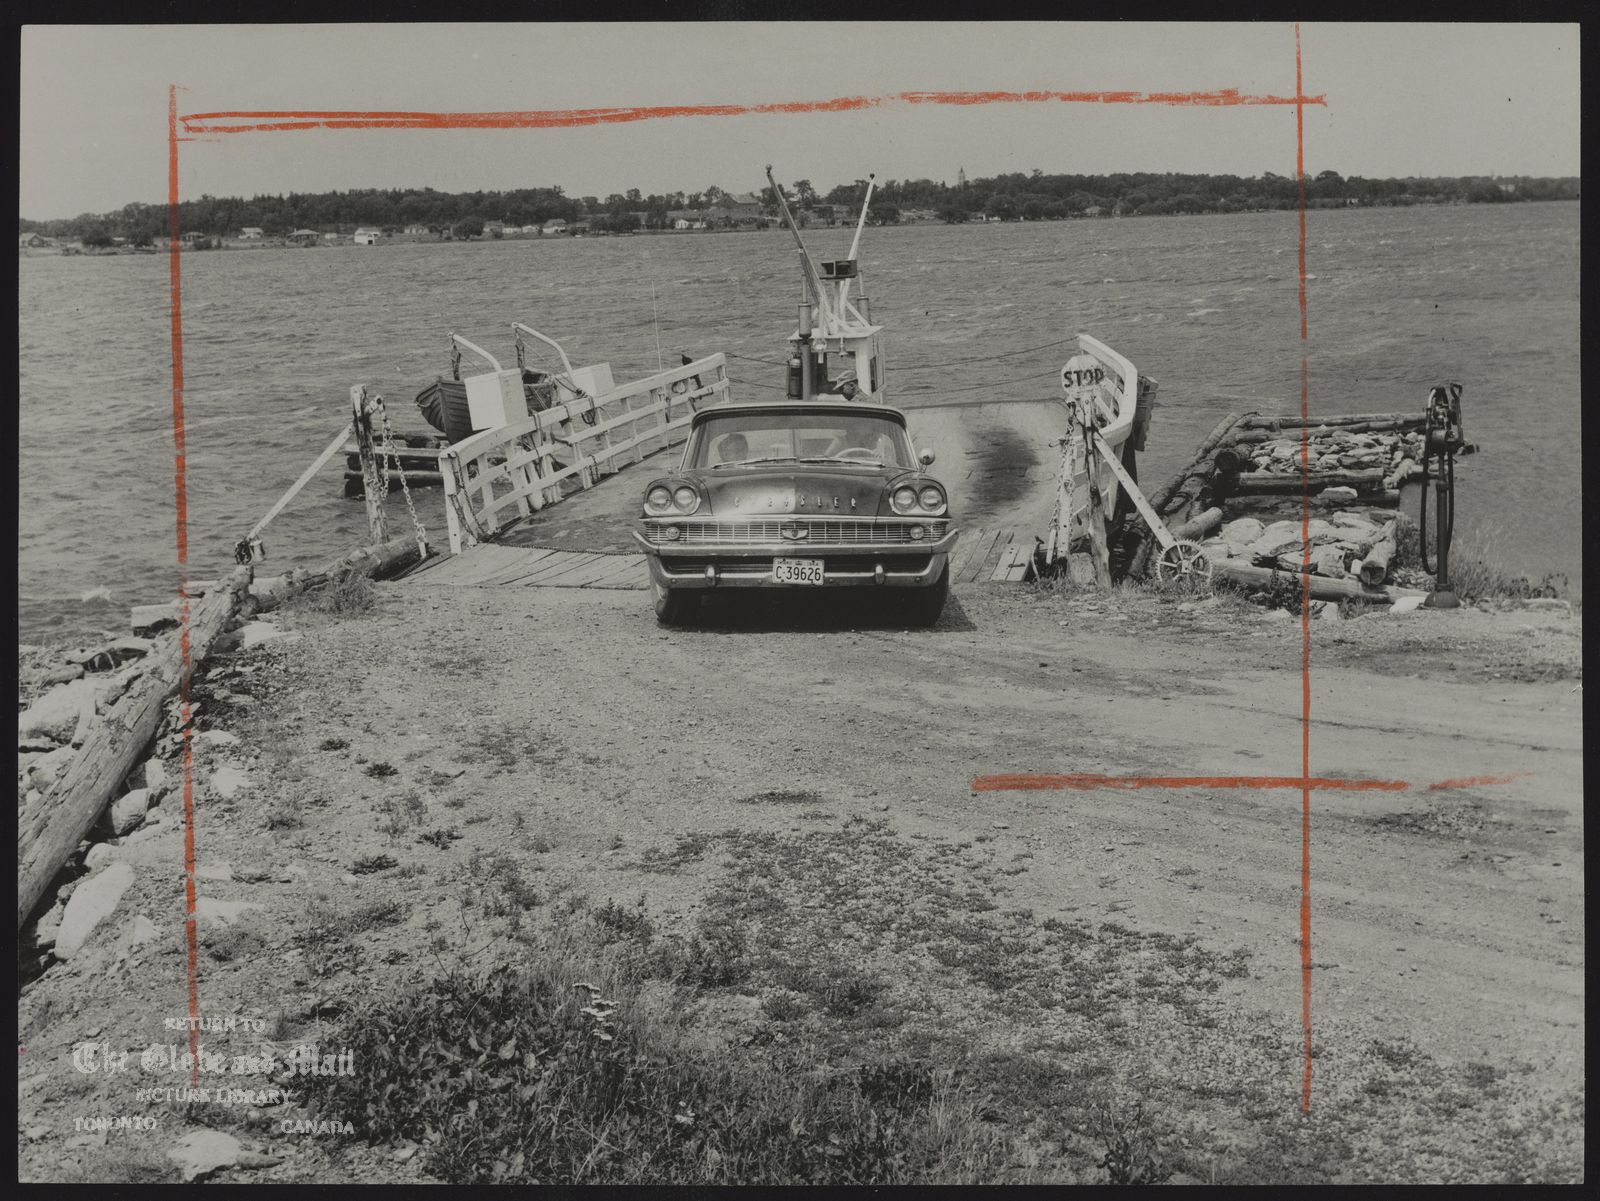 The notes transcribed from the back of this photograph are as follows: To be replaced by bridge from Tyendinaga Indian reserve at Deseronto to Prince Edward County, double ended car carrier has been crossing three-quarter-mile gap for over 80 years.